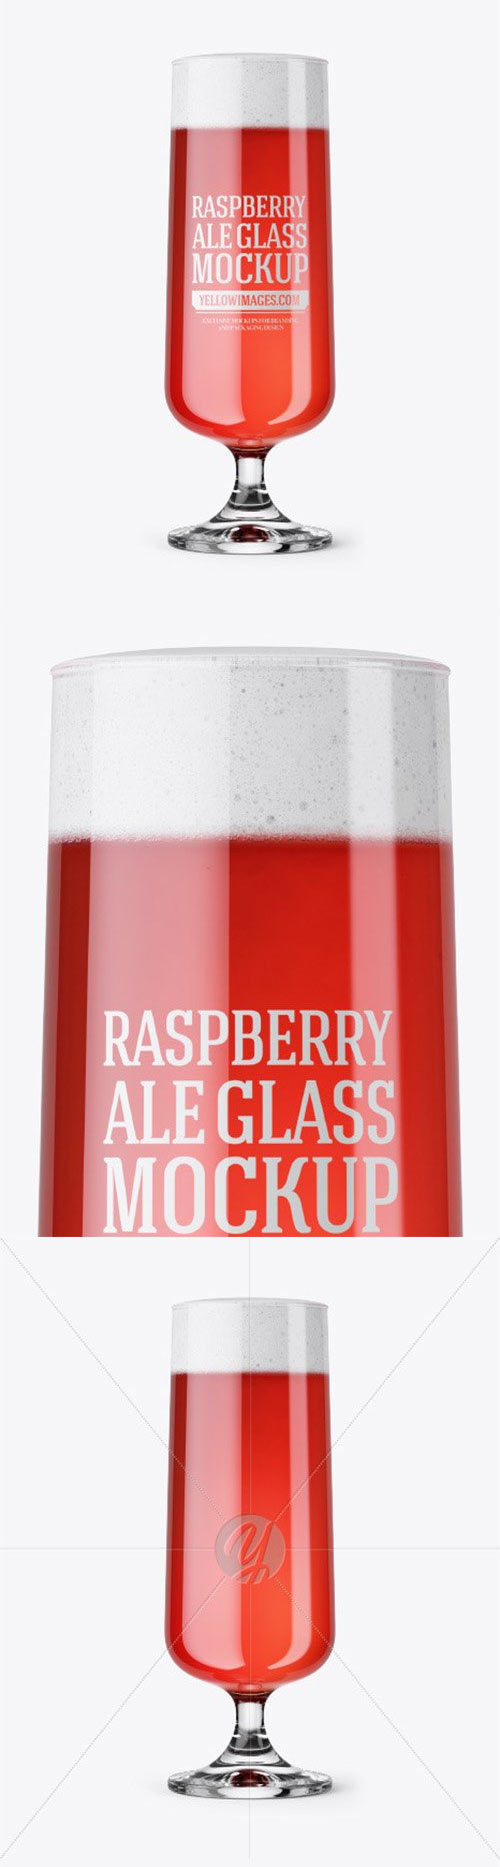 Download Goblet Glass With Raspberry Ale Mockup Mockups Free Psd Templates Psd Template Free Goblets Glass Raspberry PSD Mockup Templates